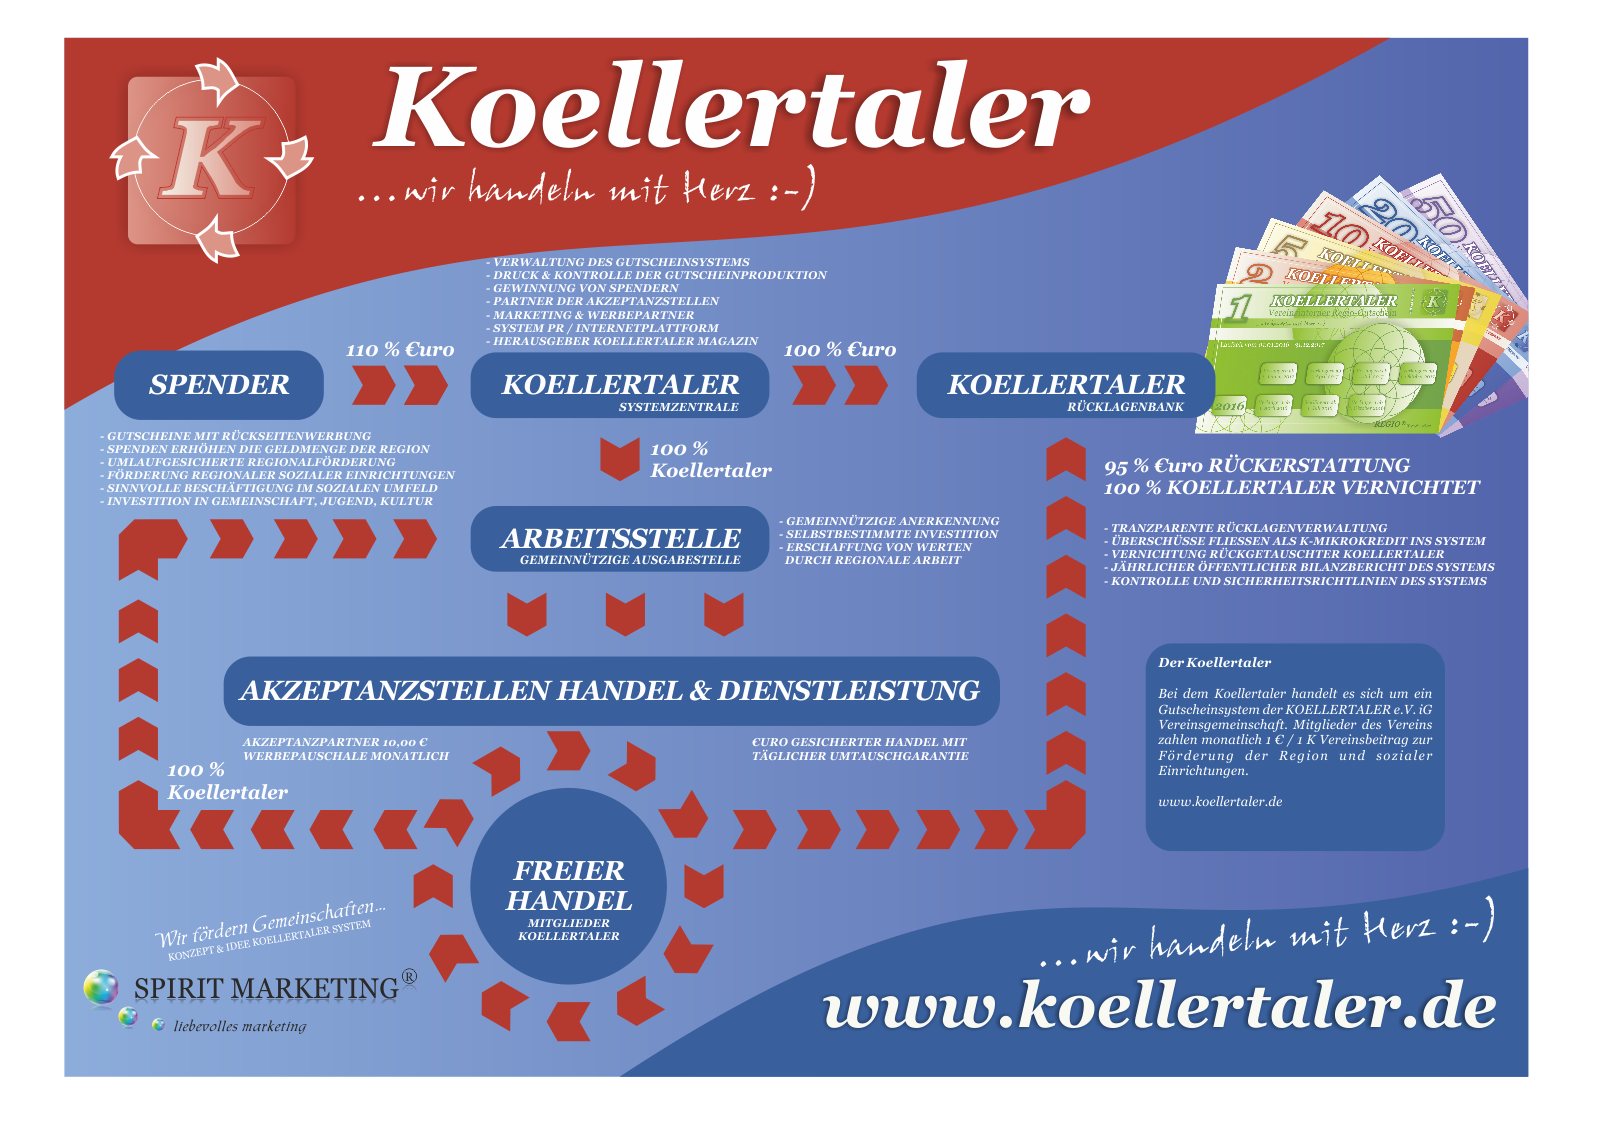 SPIRIT MARKETING - Koellertaler Systemuebersicht